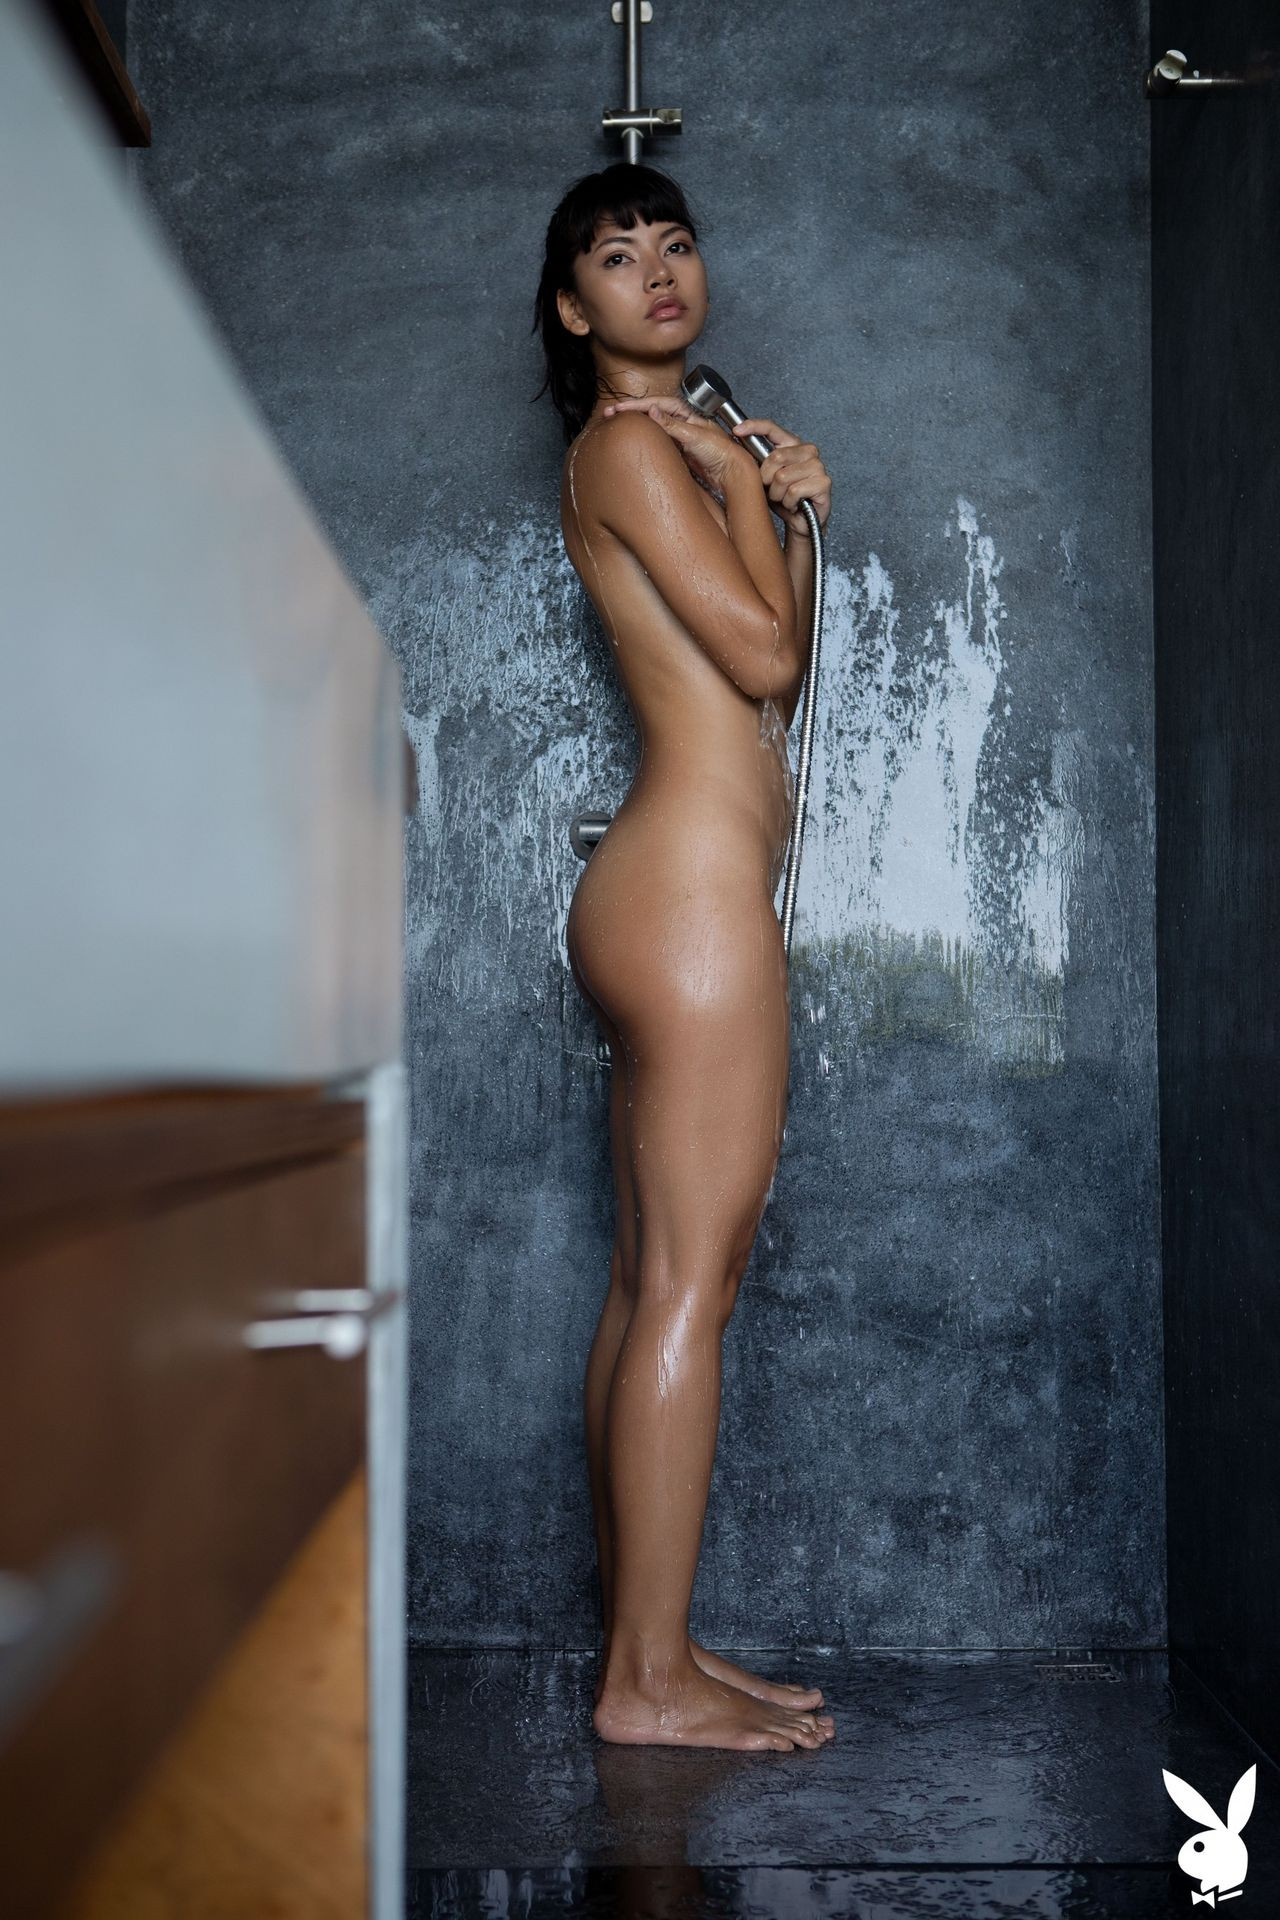 Cara Pin Nude Soft Shower thefappening.nu 7